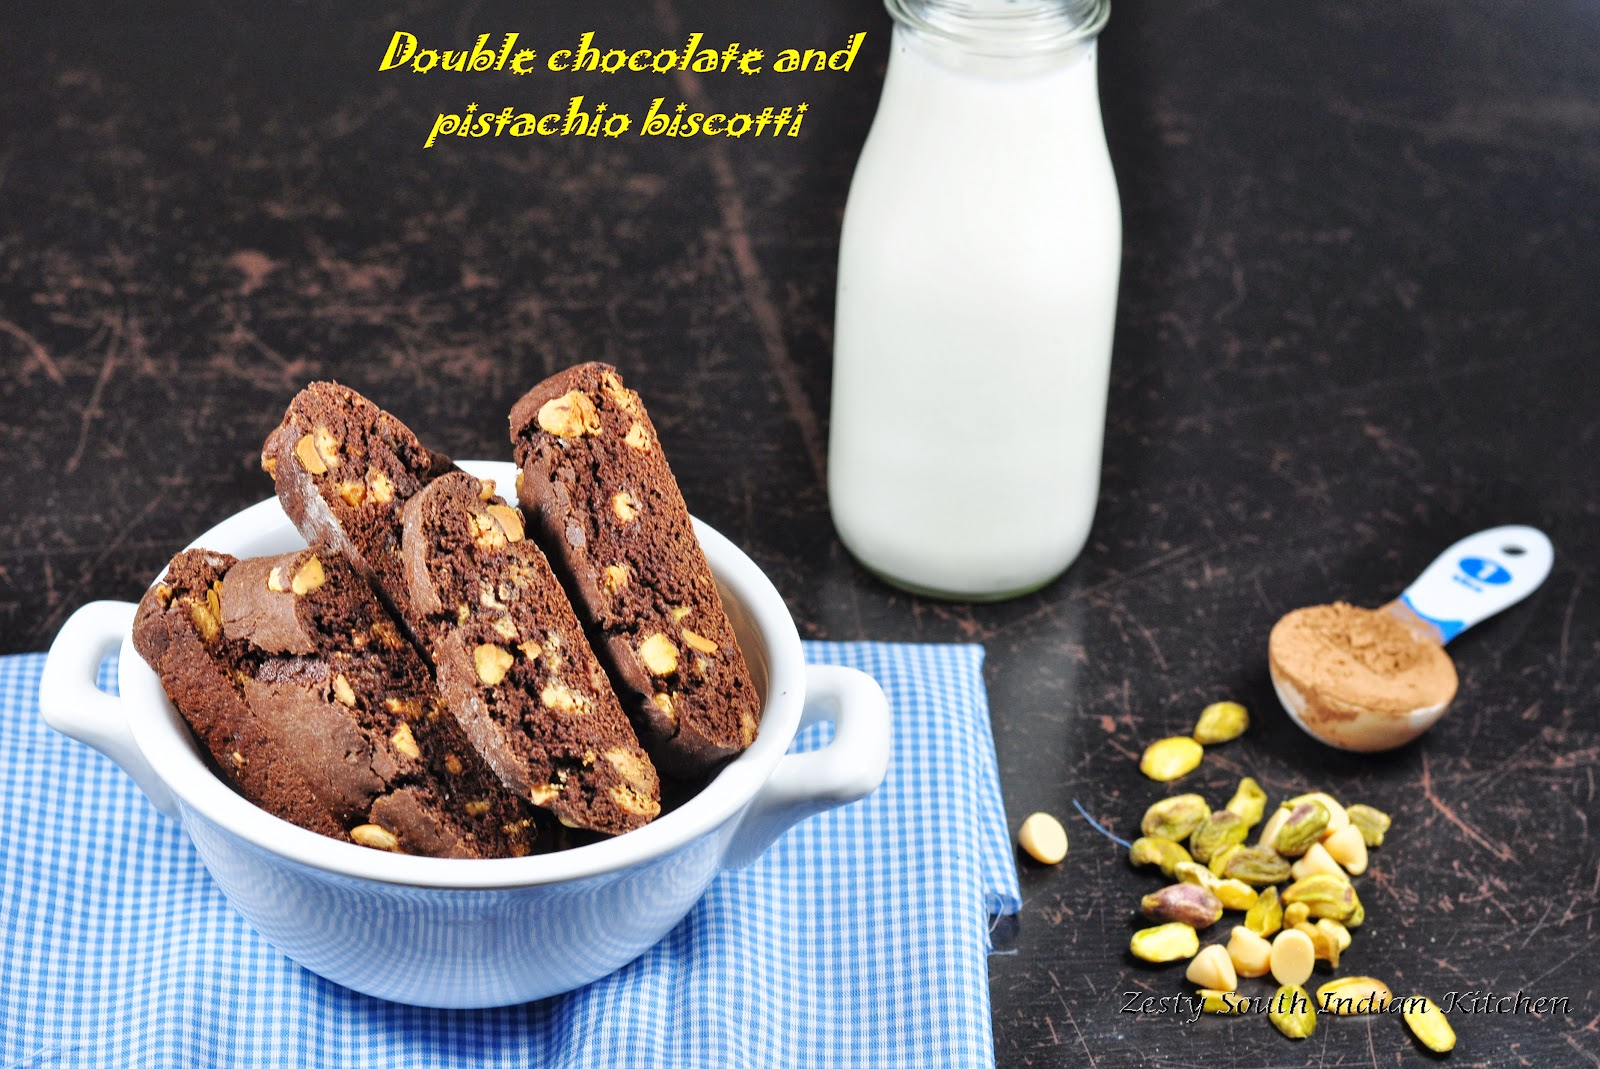 Double chocolate and pistachio biscotti for Baking ...